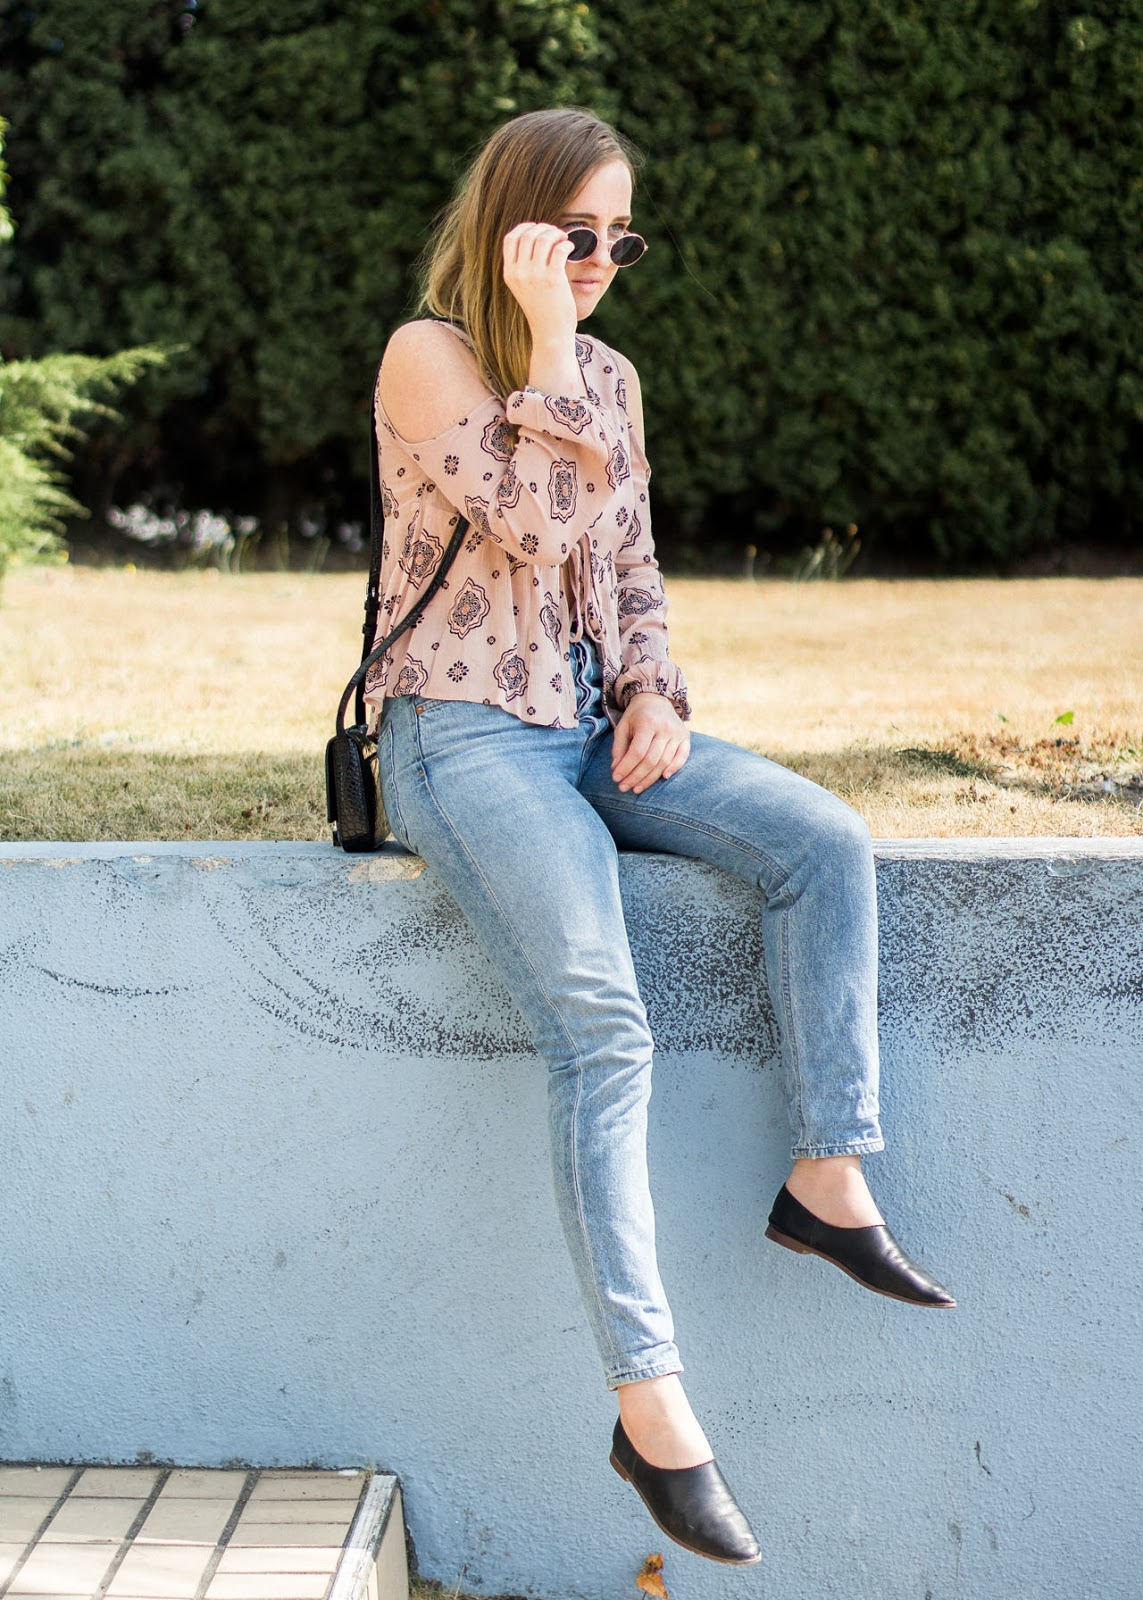 Vancouver Fashion and personal style blogger - In My Dreams - Outfit